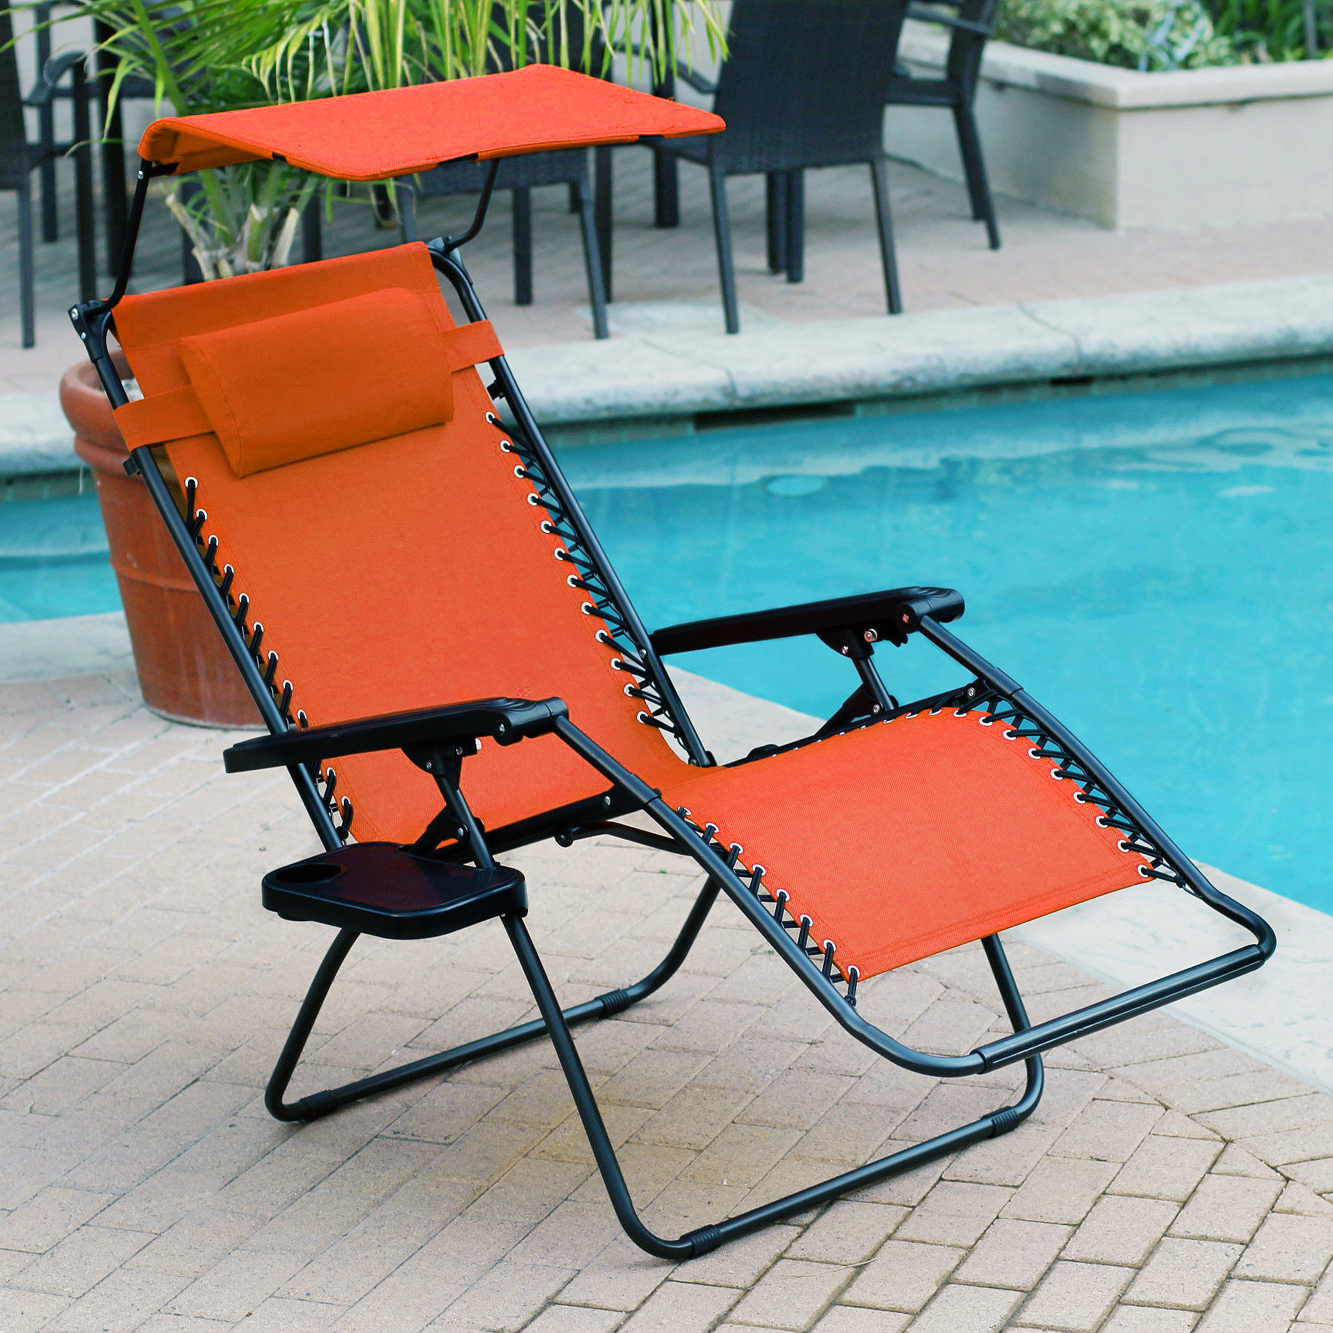 Best And Newest The 4 Best Zero Gravity Chairs On The Market Reviews & Guide With Regard To Outdoor Yard Pool Recliner Folding Lounge Table Chairs (View 22 of 25)